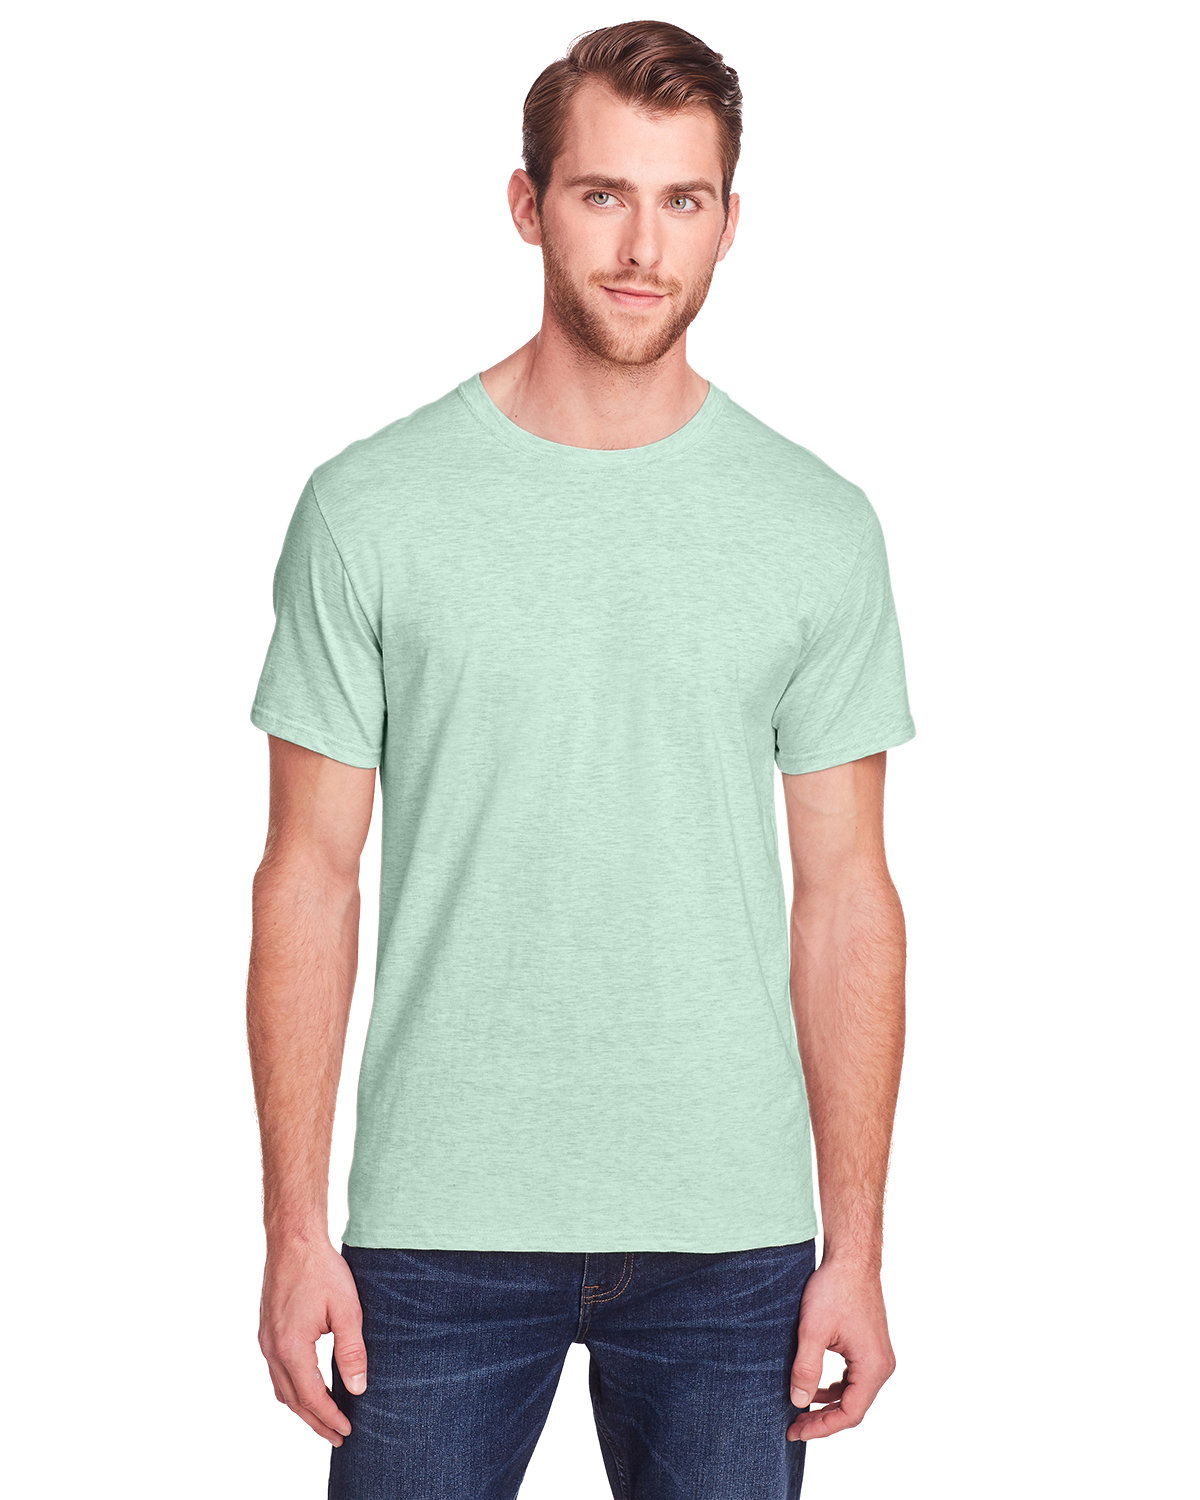 Fruit of the Loom Adult ICONIC™ T-Shirt MINT TO BE HTHR